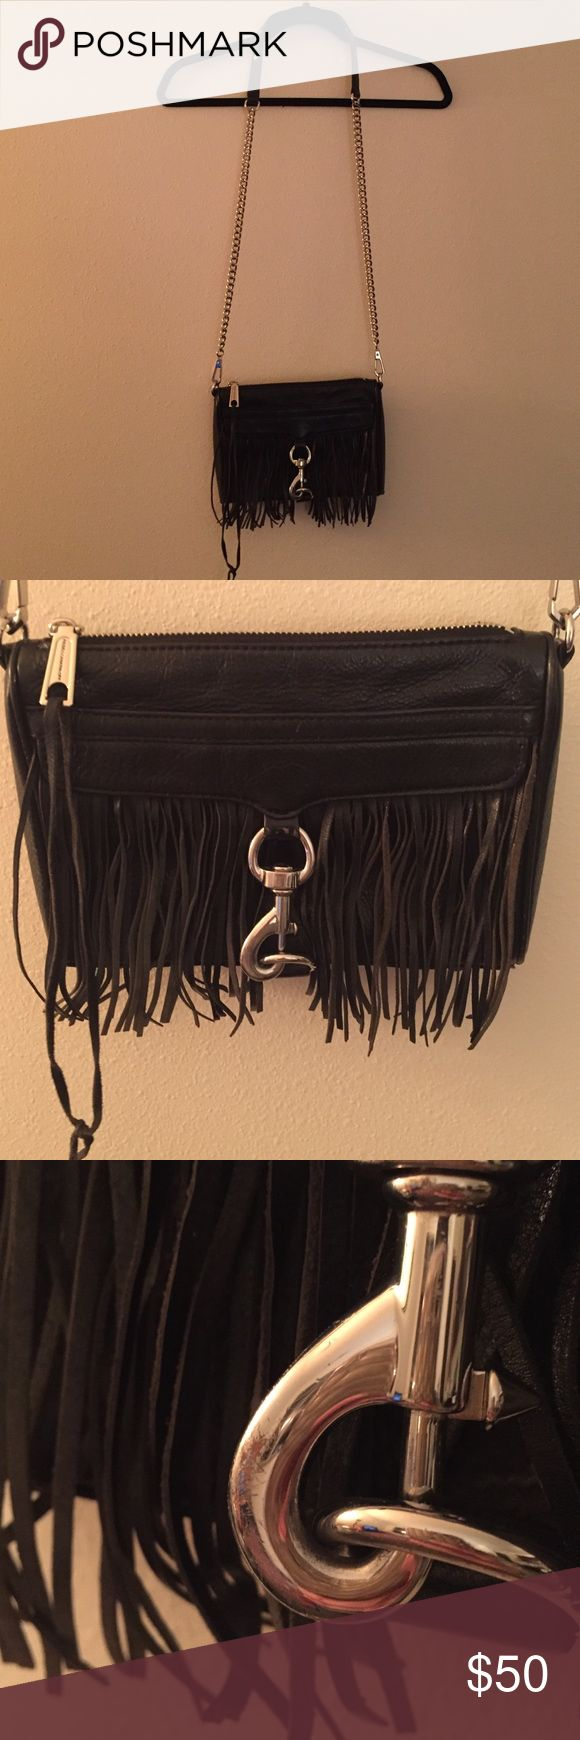 Rebecca Minkoff Mini Mac with Fringe Authentic Rebecca Minkoff mini Mac with fringe. Black leather, silver hardware. Worn condition as seen in pic of corner and the metal. Rebecca Minkoff Bags Crossbody Bags